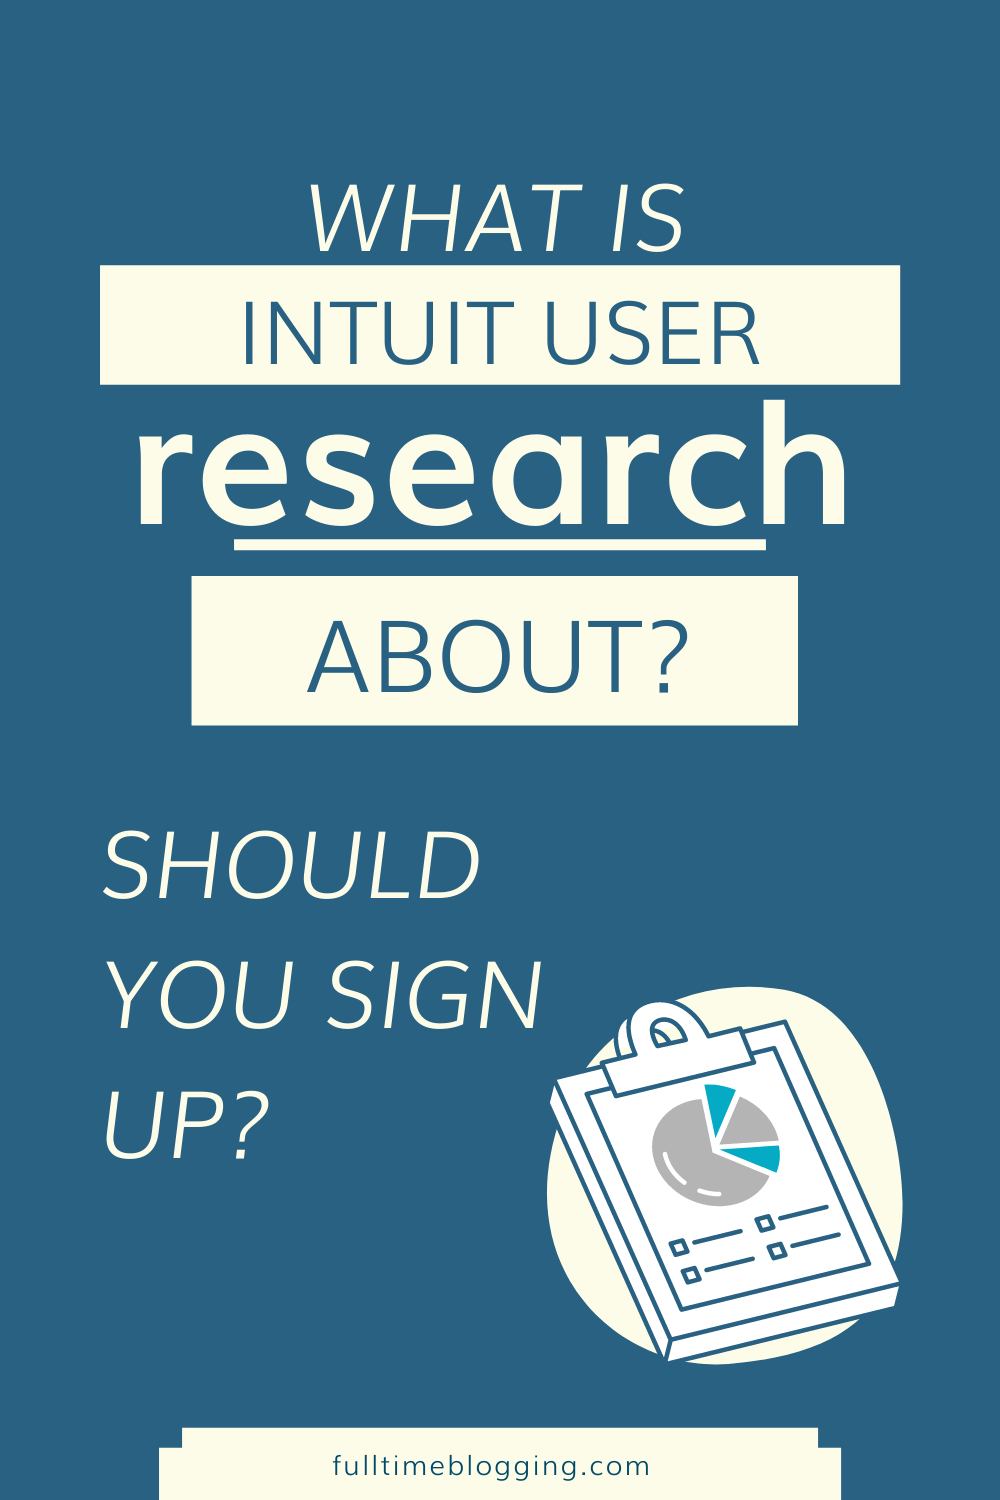 What Is Intuit User Research About